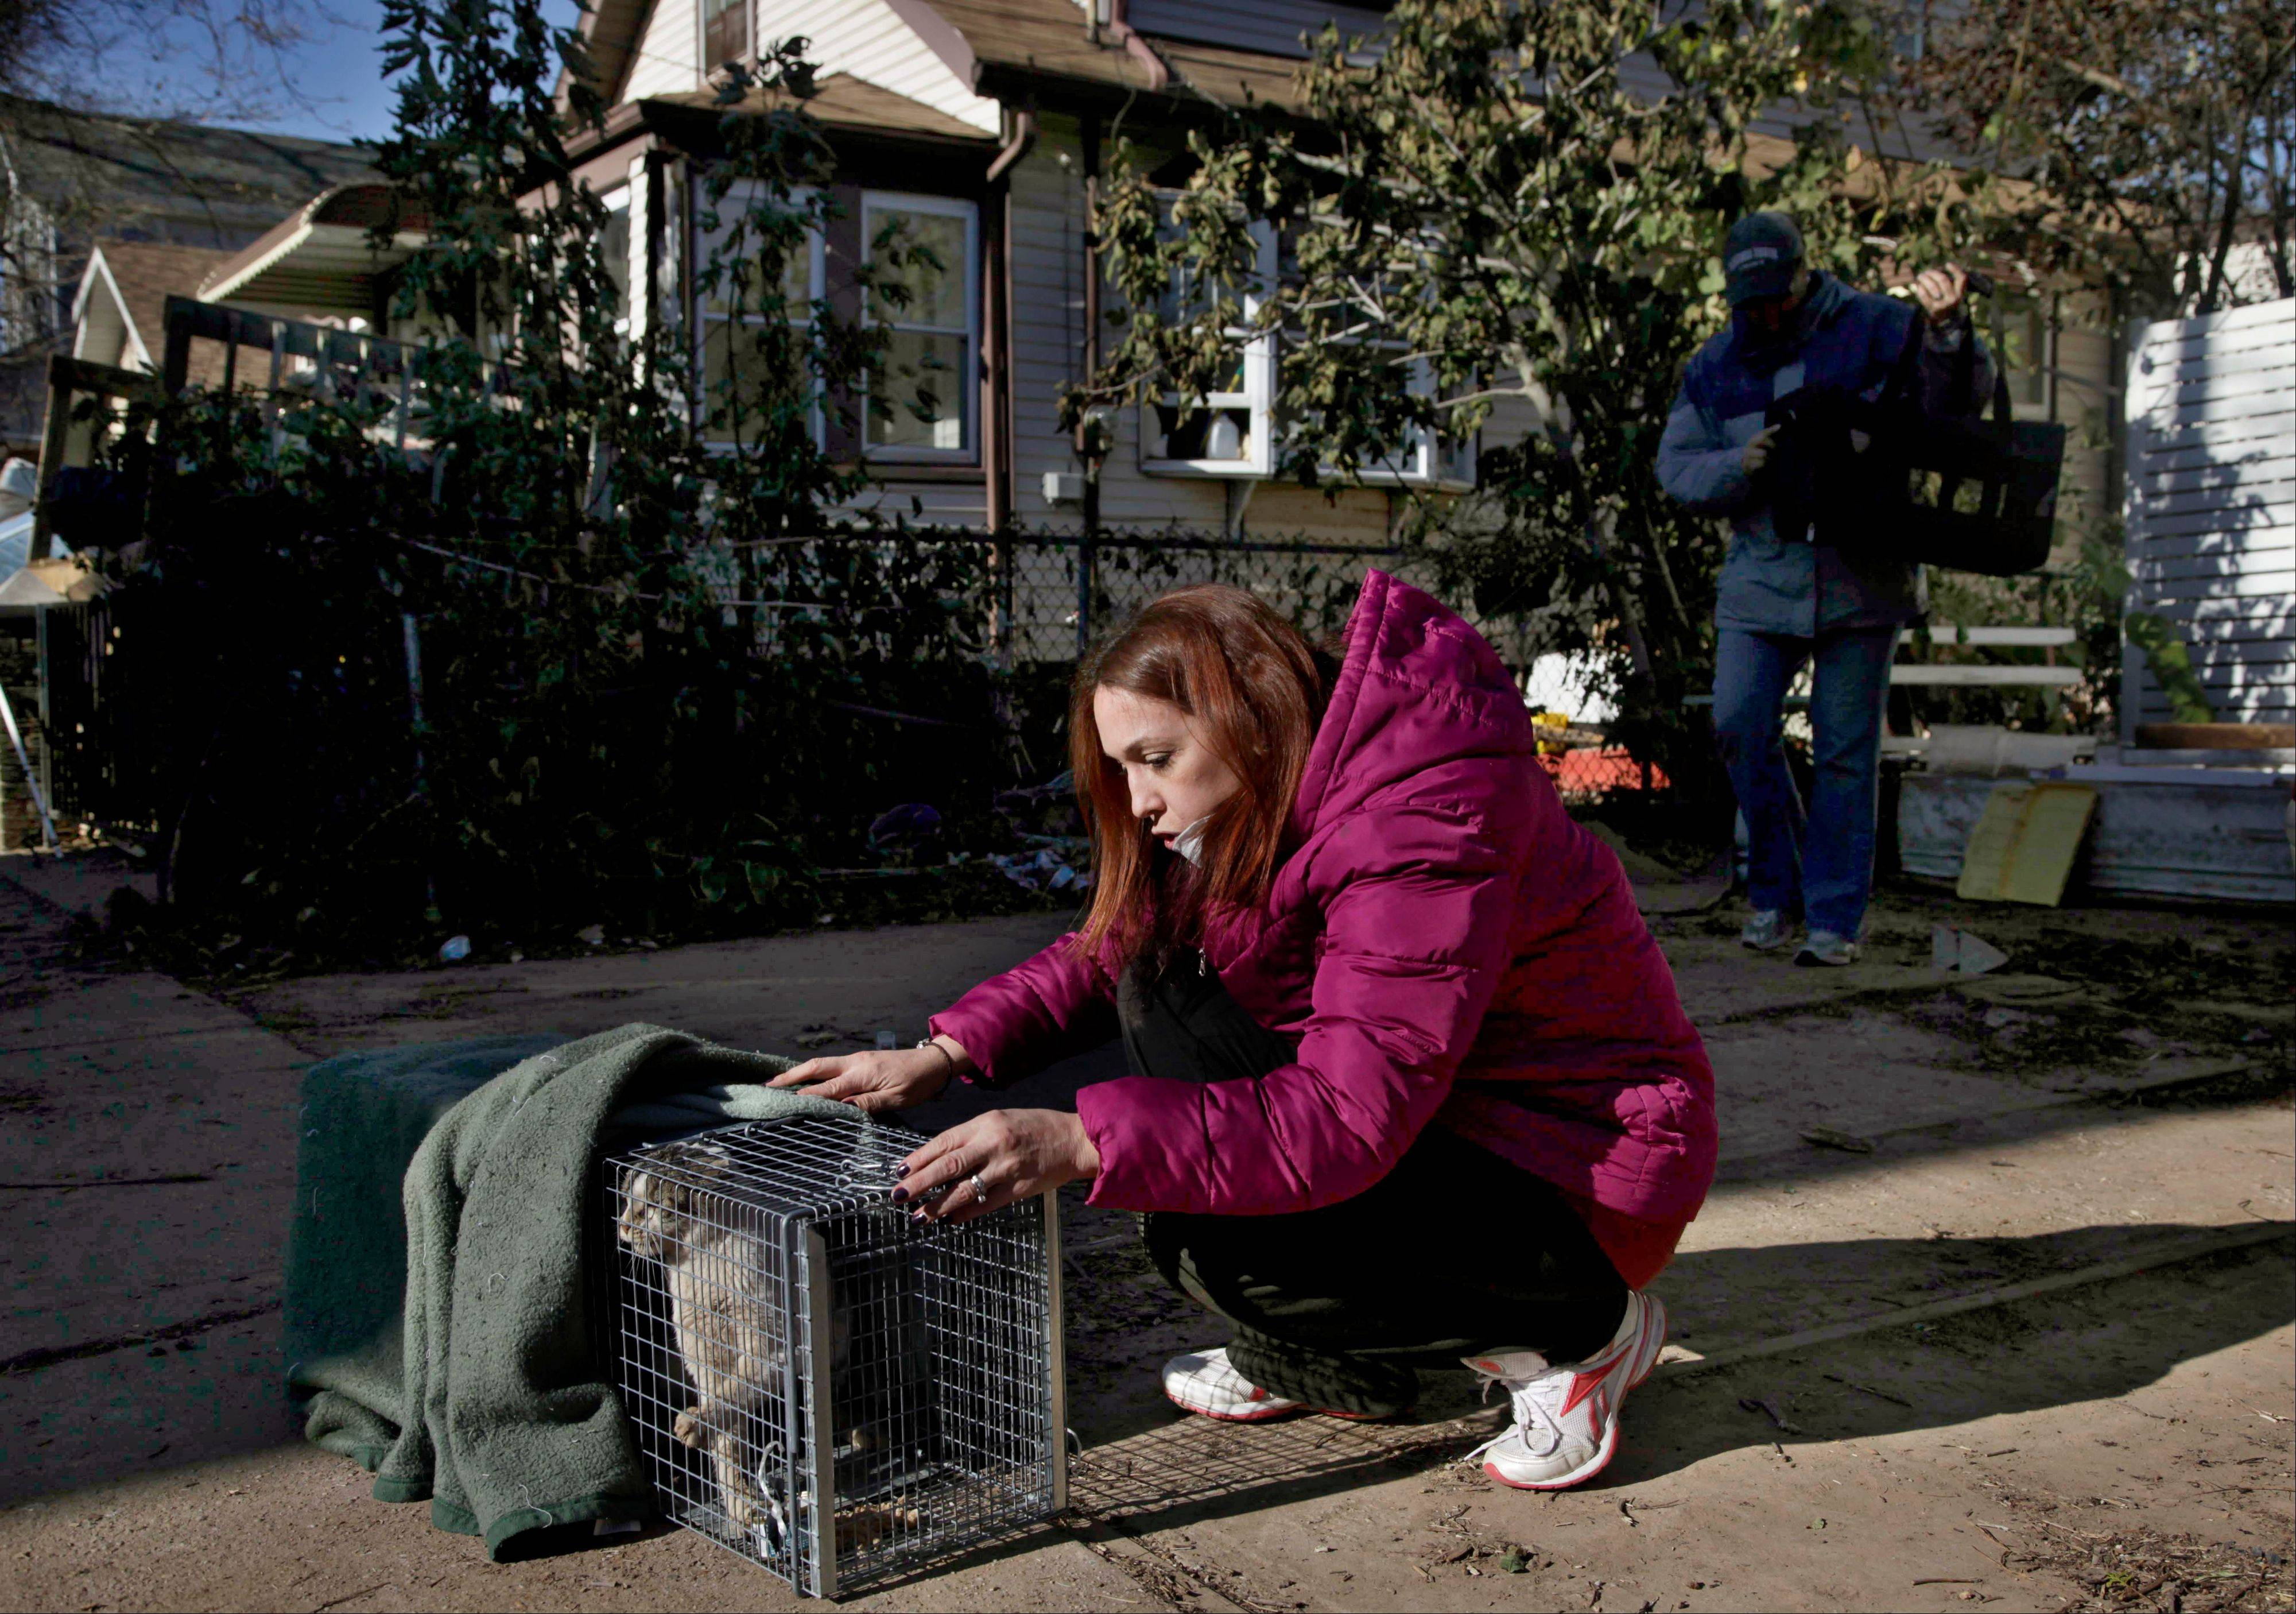 Dina McKenzie traps a stray cat in the New Dorp section of the Staten Island borough of New York. After Superstorm Sandy passed through, McKenzie was working with two animal rescue groups to help displaced homeowners find their pets and catch strays that need care.